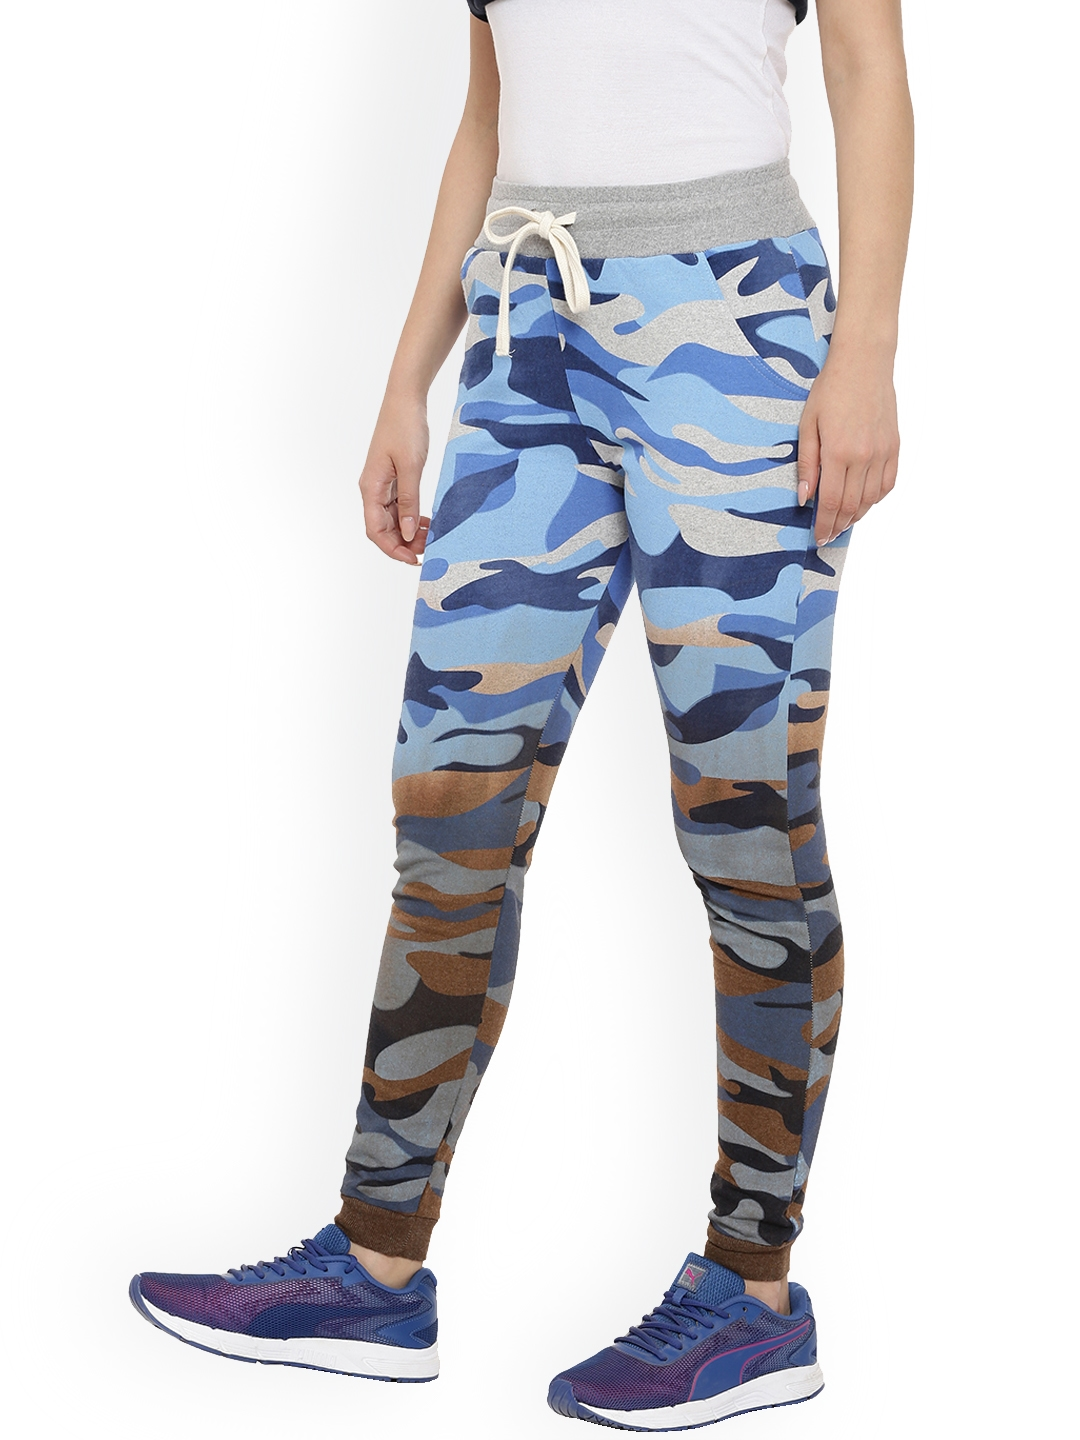 cafde530c405b Buy Campus Sutra Women Multicoloured Ombre & Camouflage Print ...